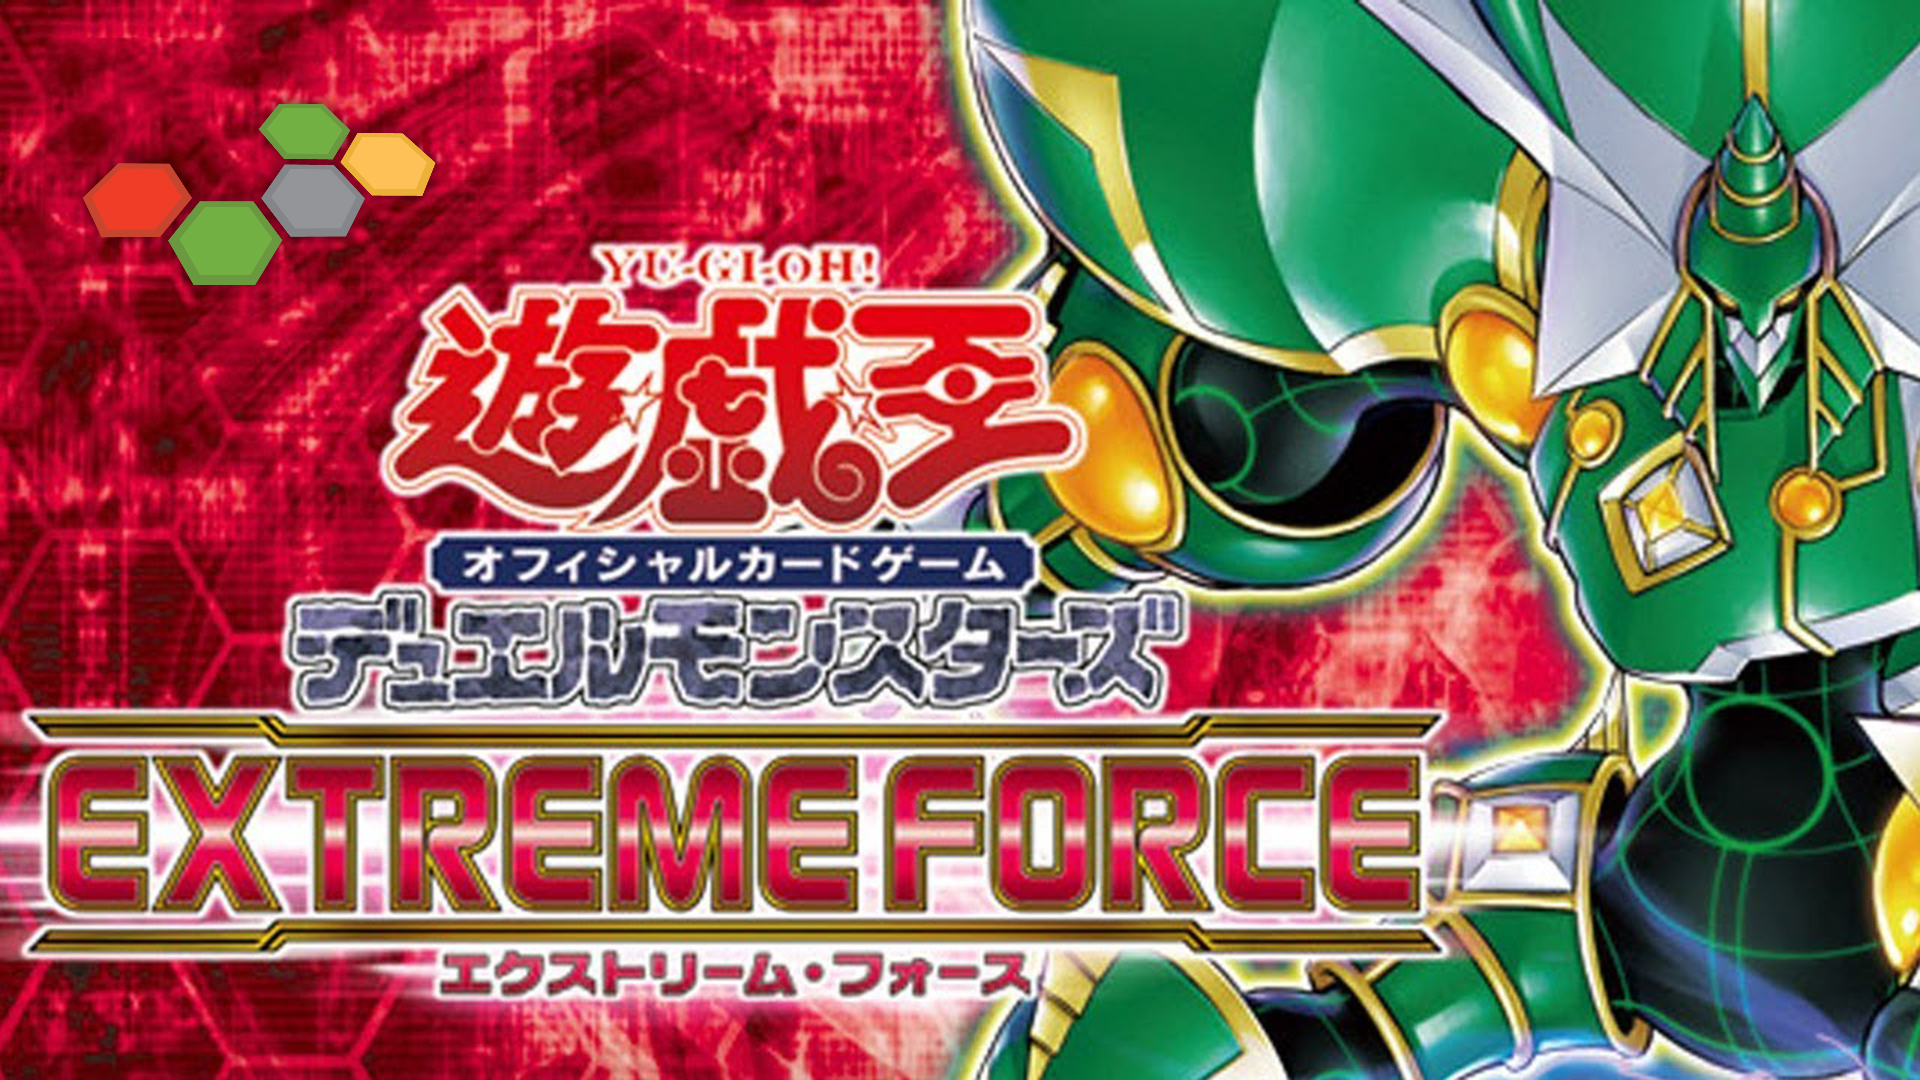 YGO Extreme Force Event Image.jpg